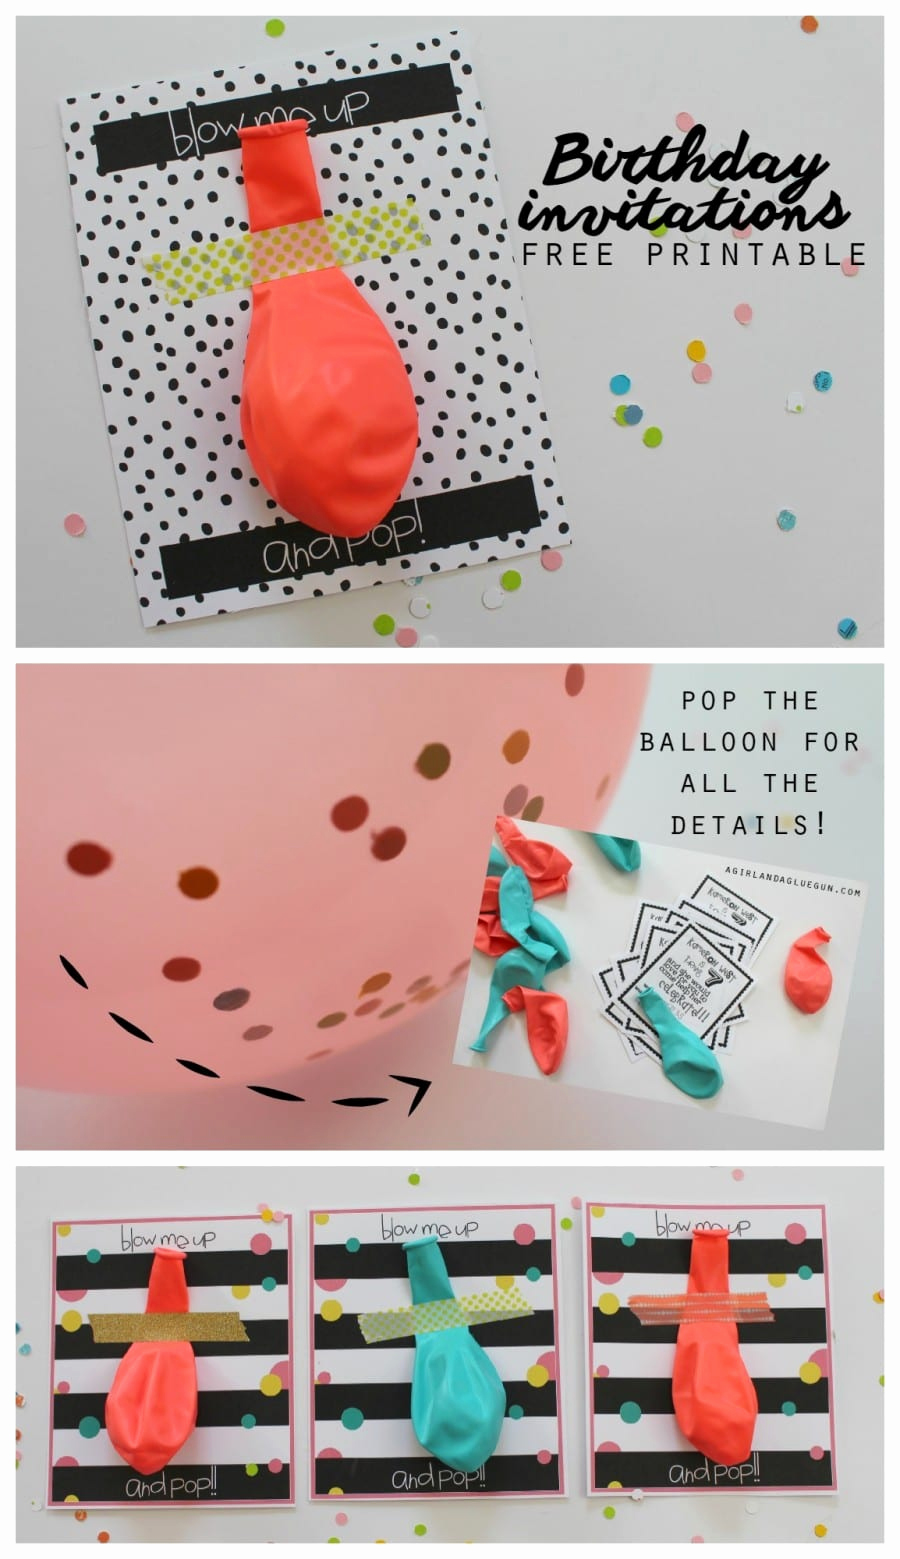 Creative Birthday Invitation Ideas Inspirational Balloon Invitations with Free Printables A Girl and A